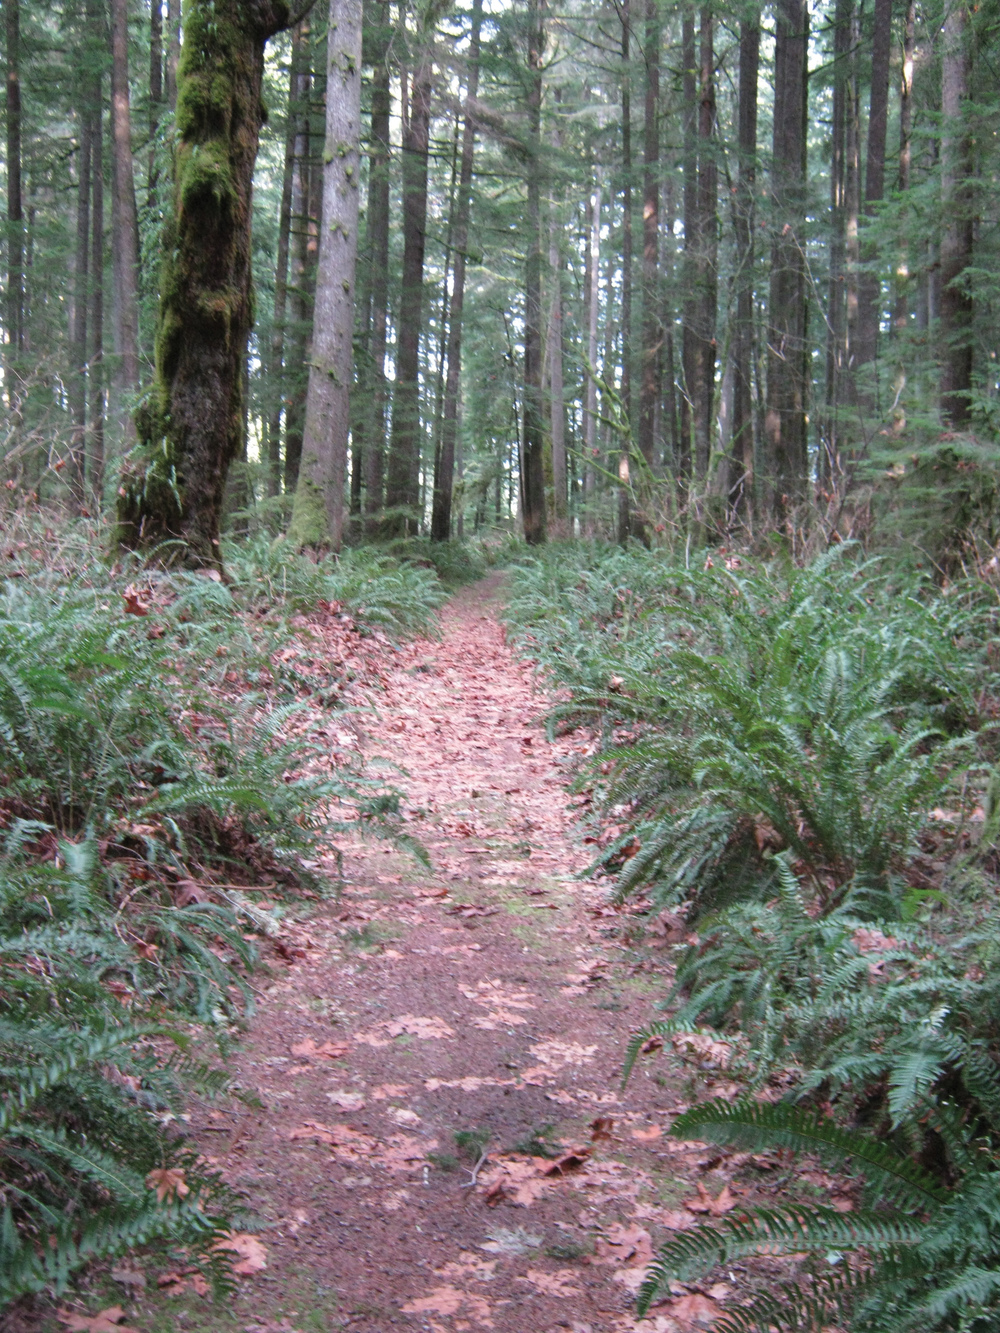 Forests provide timber, wildlife habitat, water retention and recreation opportunities.